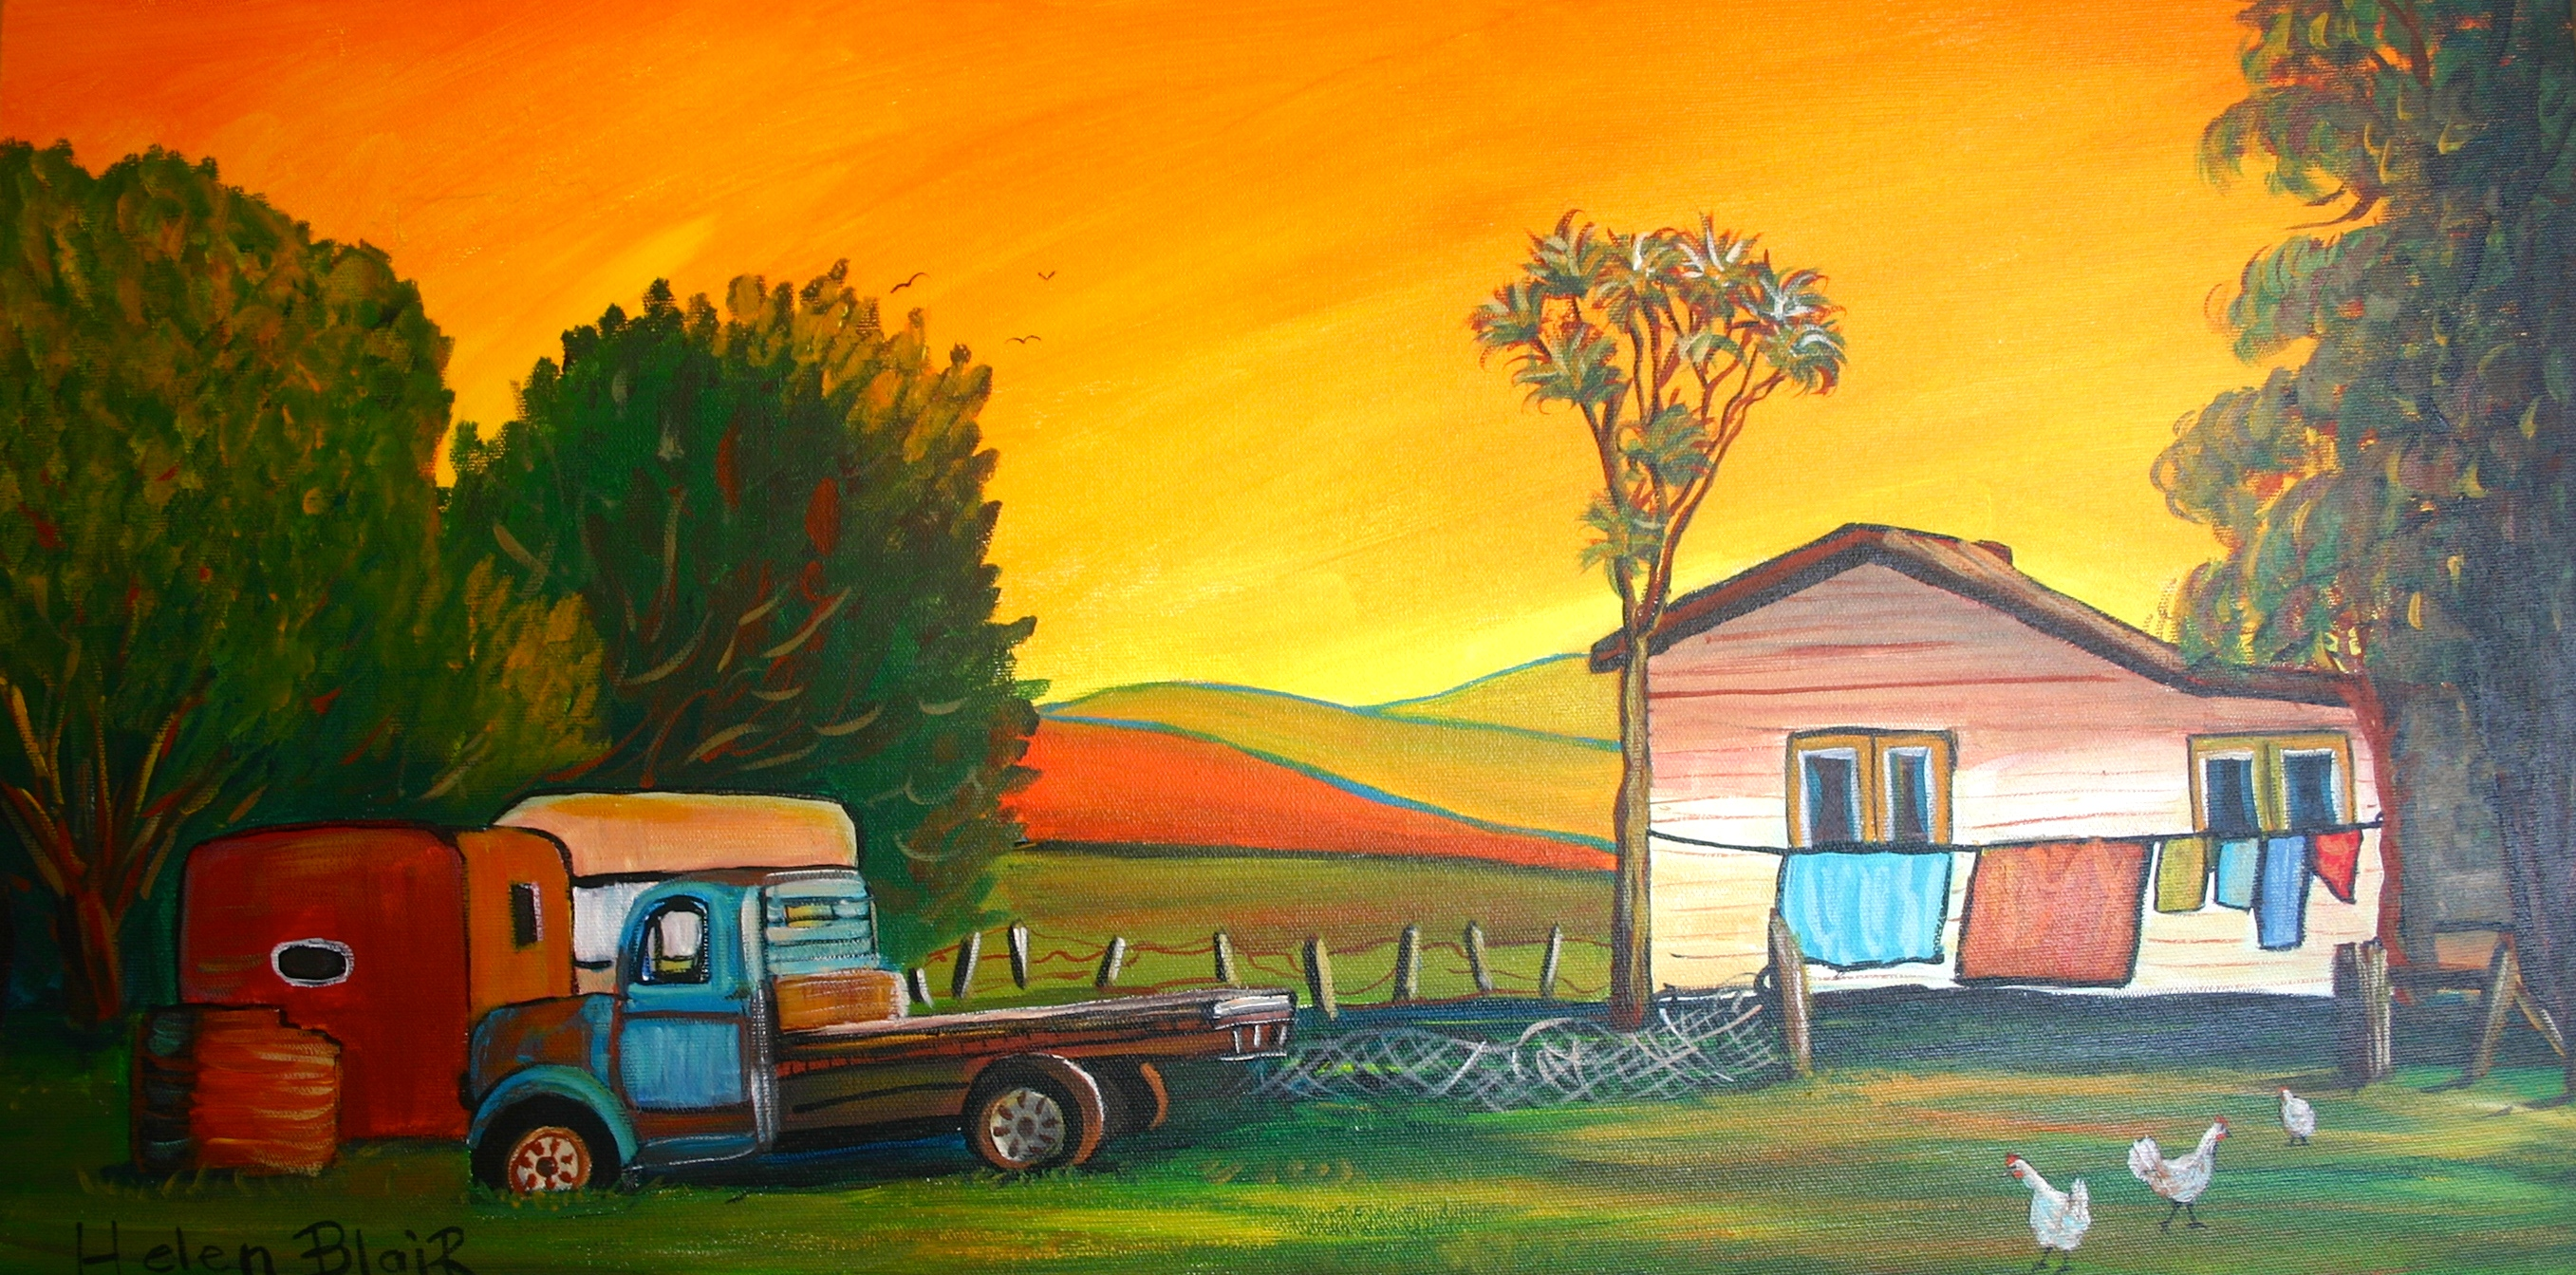 Old Farm Cottage & Truck, helenblairsart